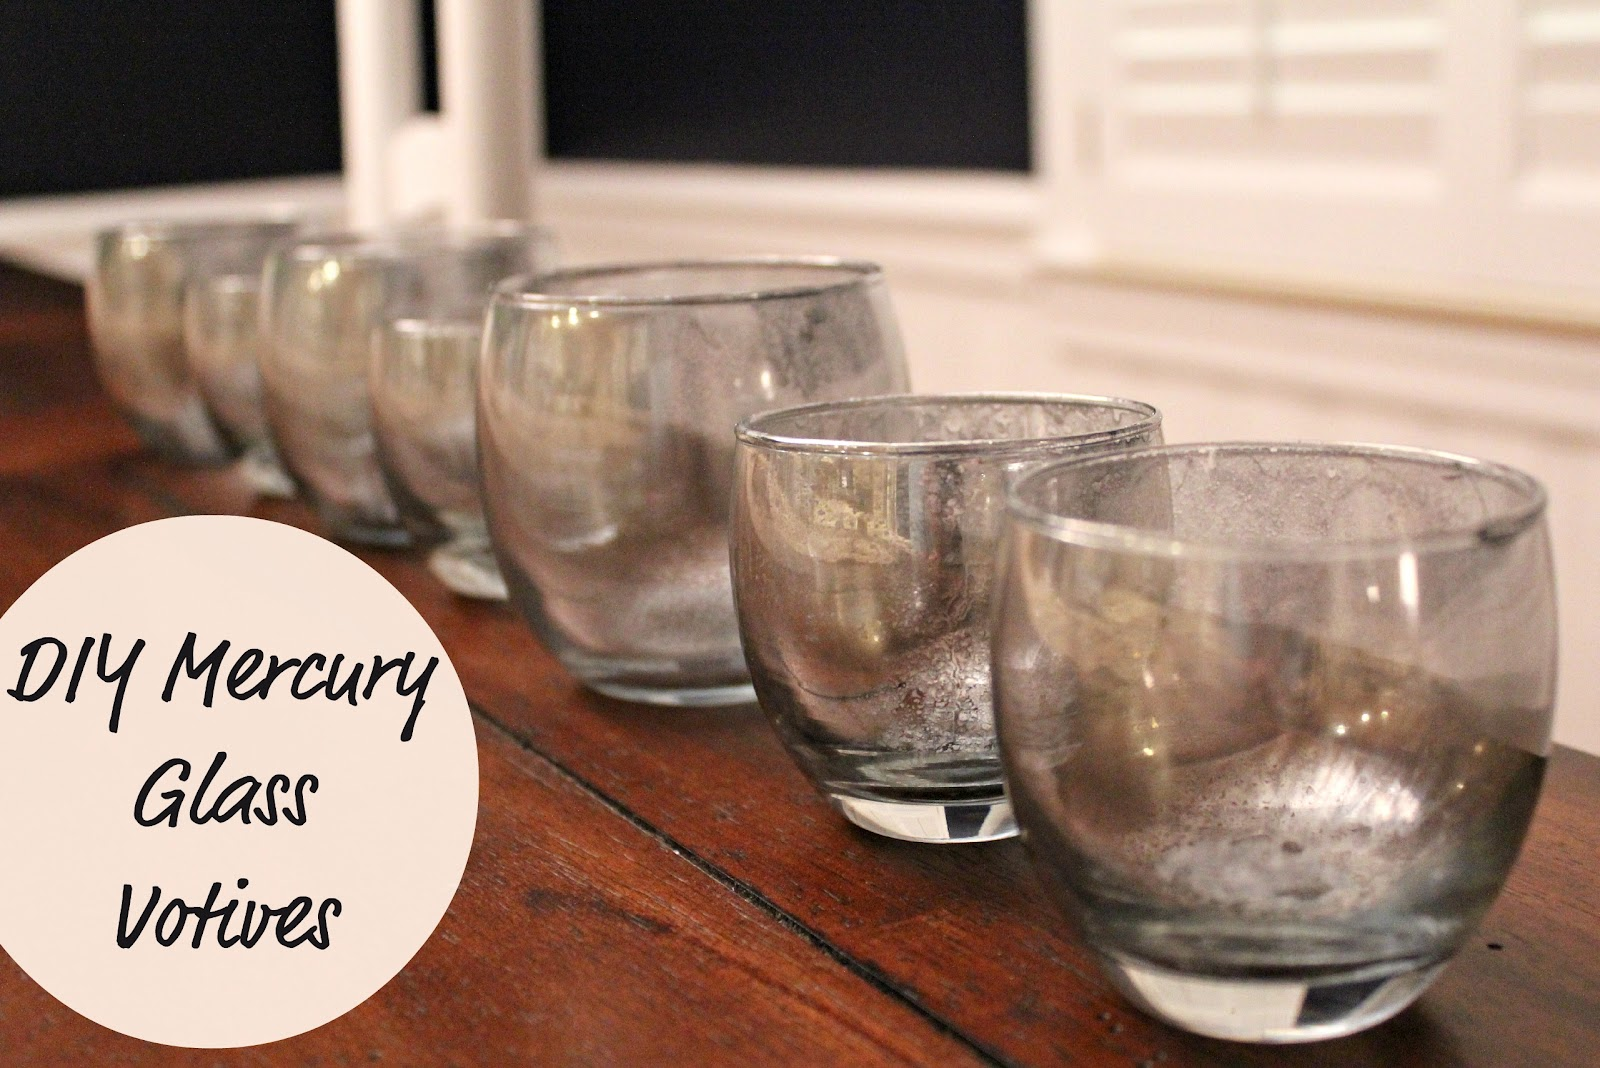 diy mercury glass votives - How To Make Mercury Glass